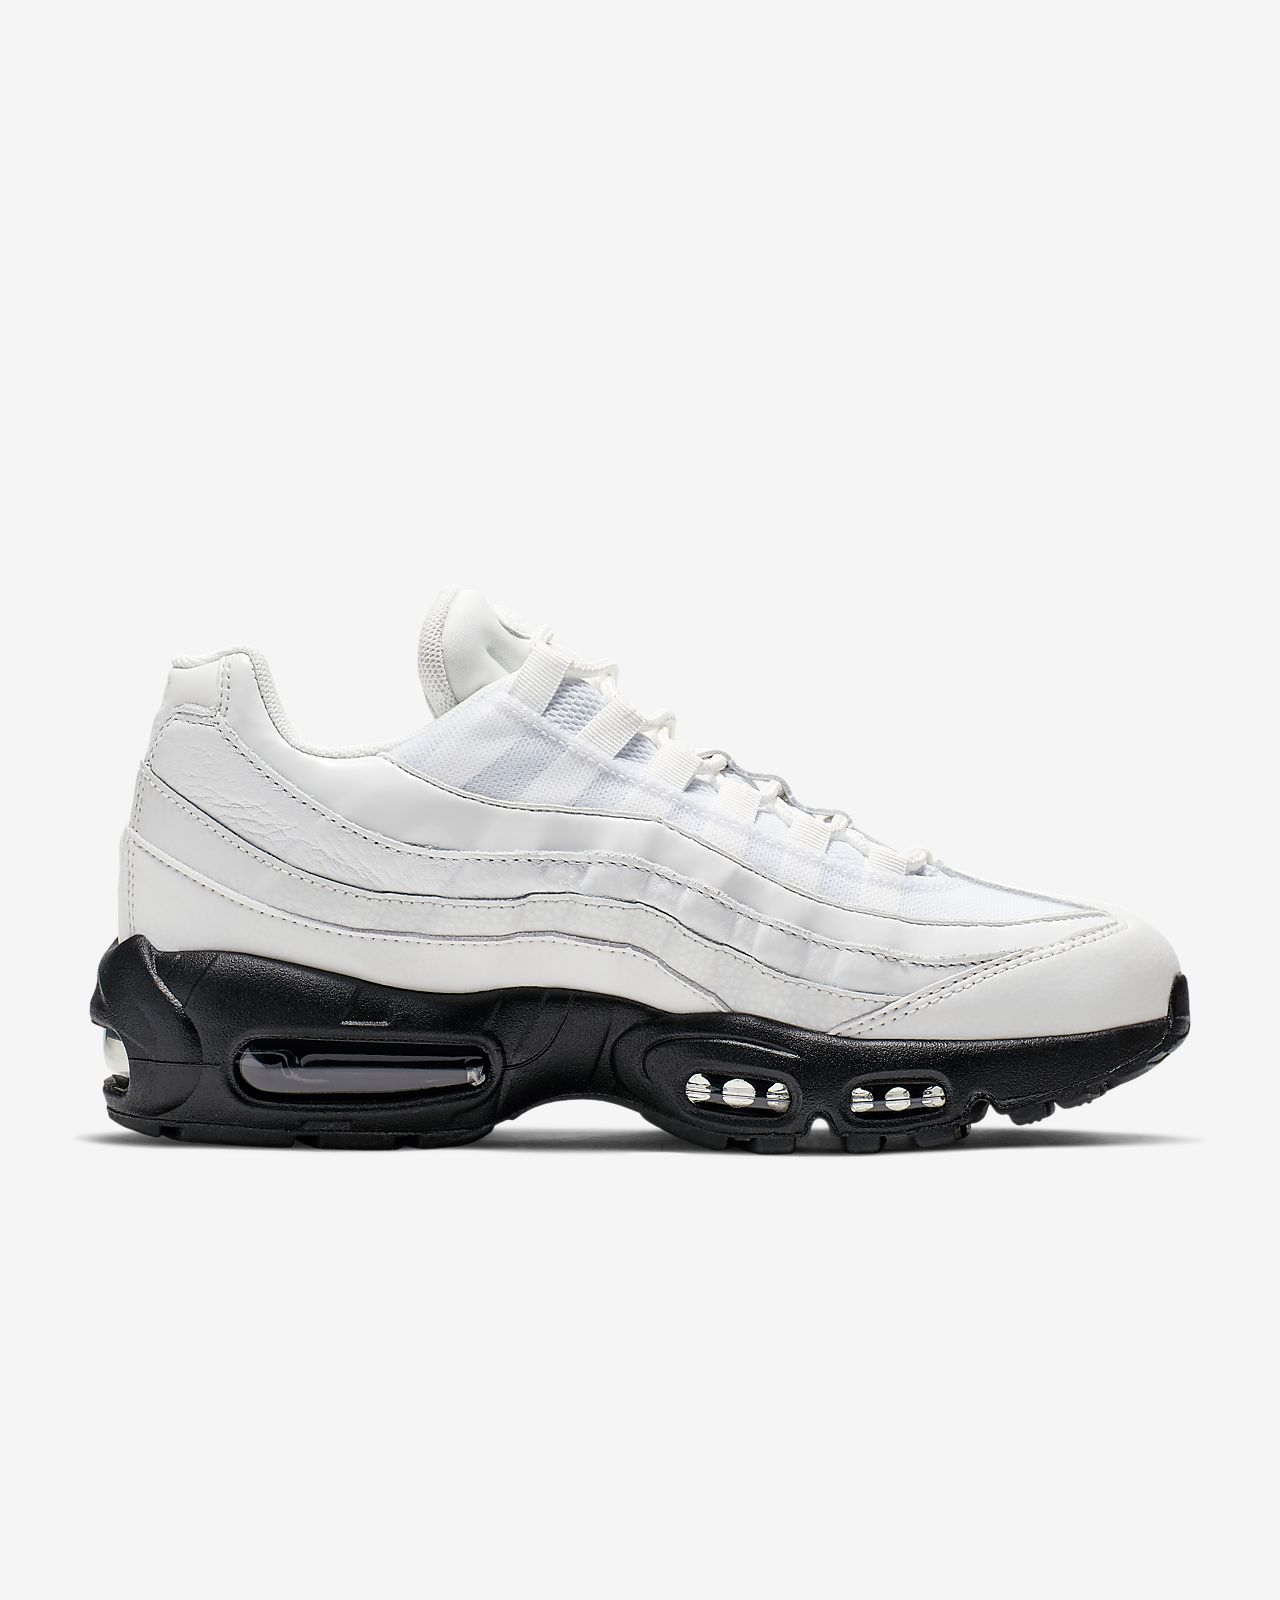 Femme Chaussure Max 95 Air Se Nike Pour Nk0X8OPZnw